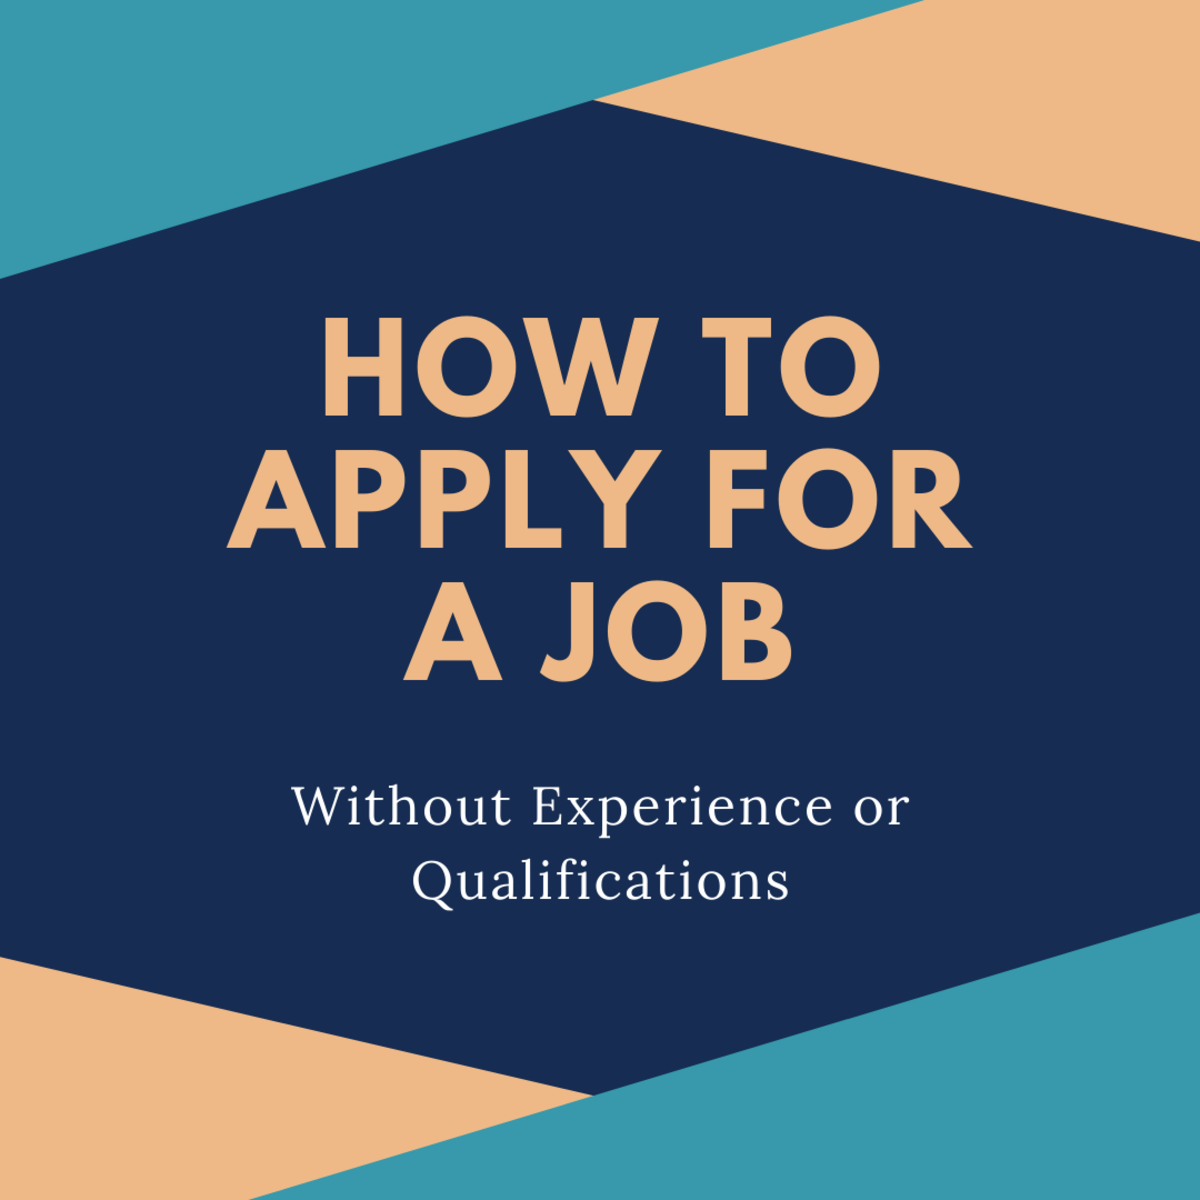 Even if you don't have the experience qualifications, you can still apply to that job!